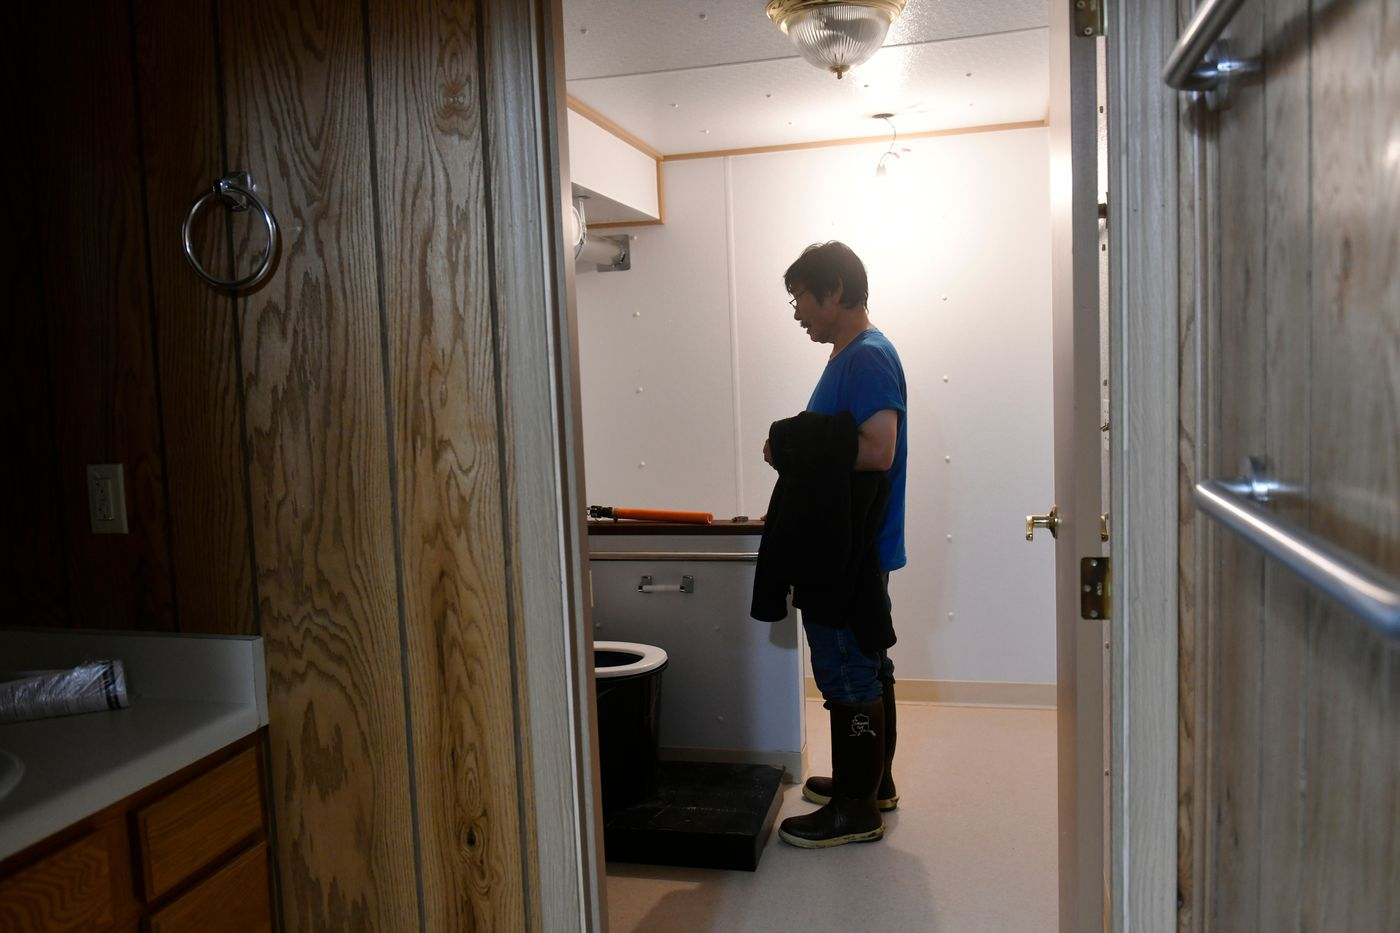 Paul Charles, member of the Newtok Village Council, looks at the portable alternative sanitation system, or PASS, in his new Mertarvik home. The system is designed, in part, to catch rainwater and minimize exposer to pathogens. (Marc Lester / ADN)